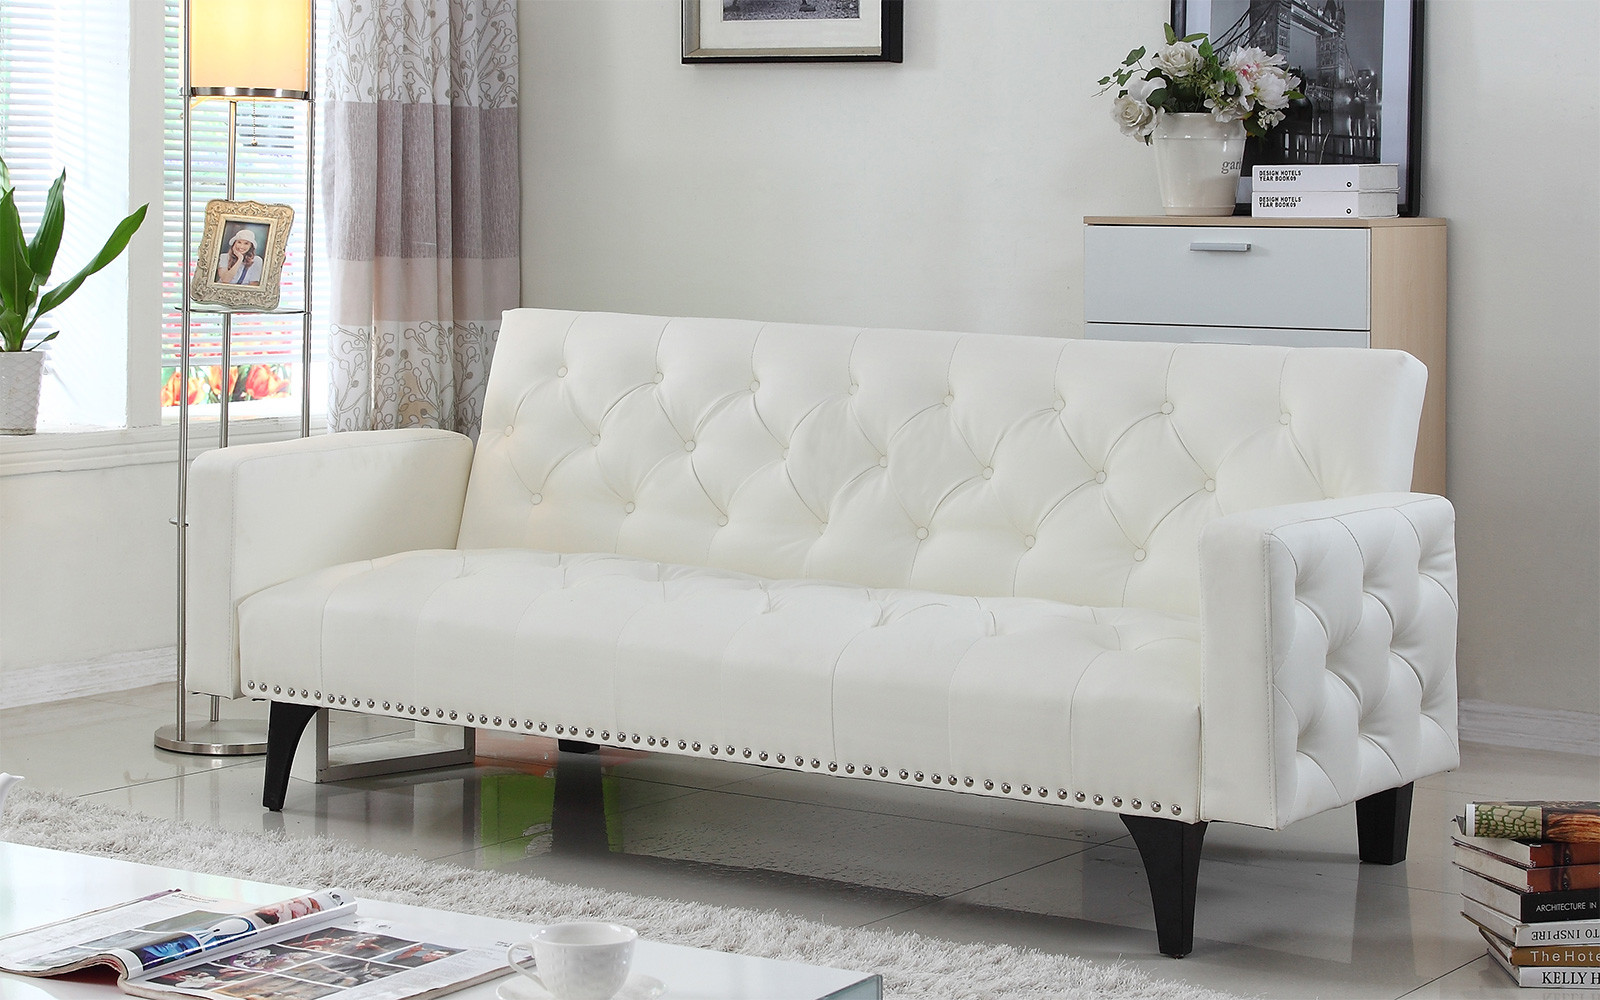 Modern Tufted Bonded Leather Sleeper Futon Sofa With Nailhead Trim